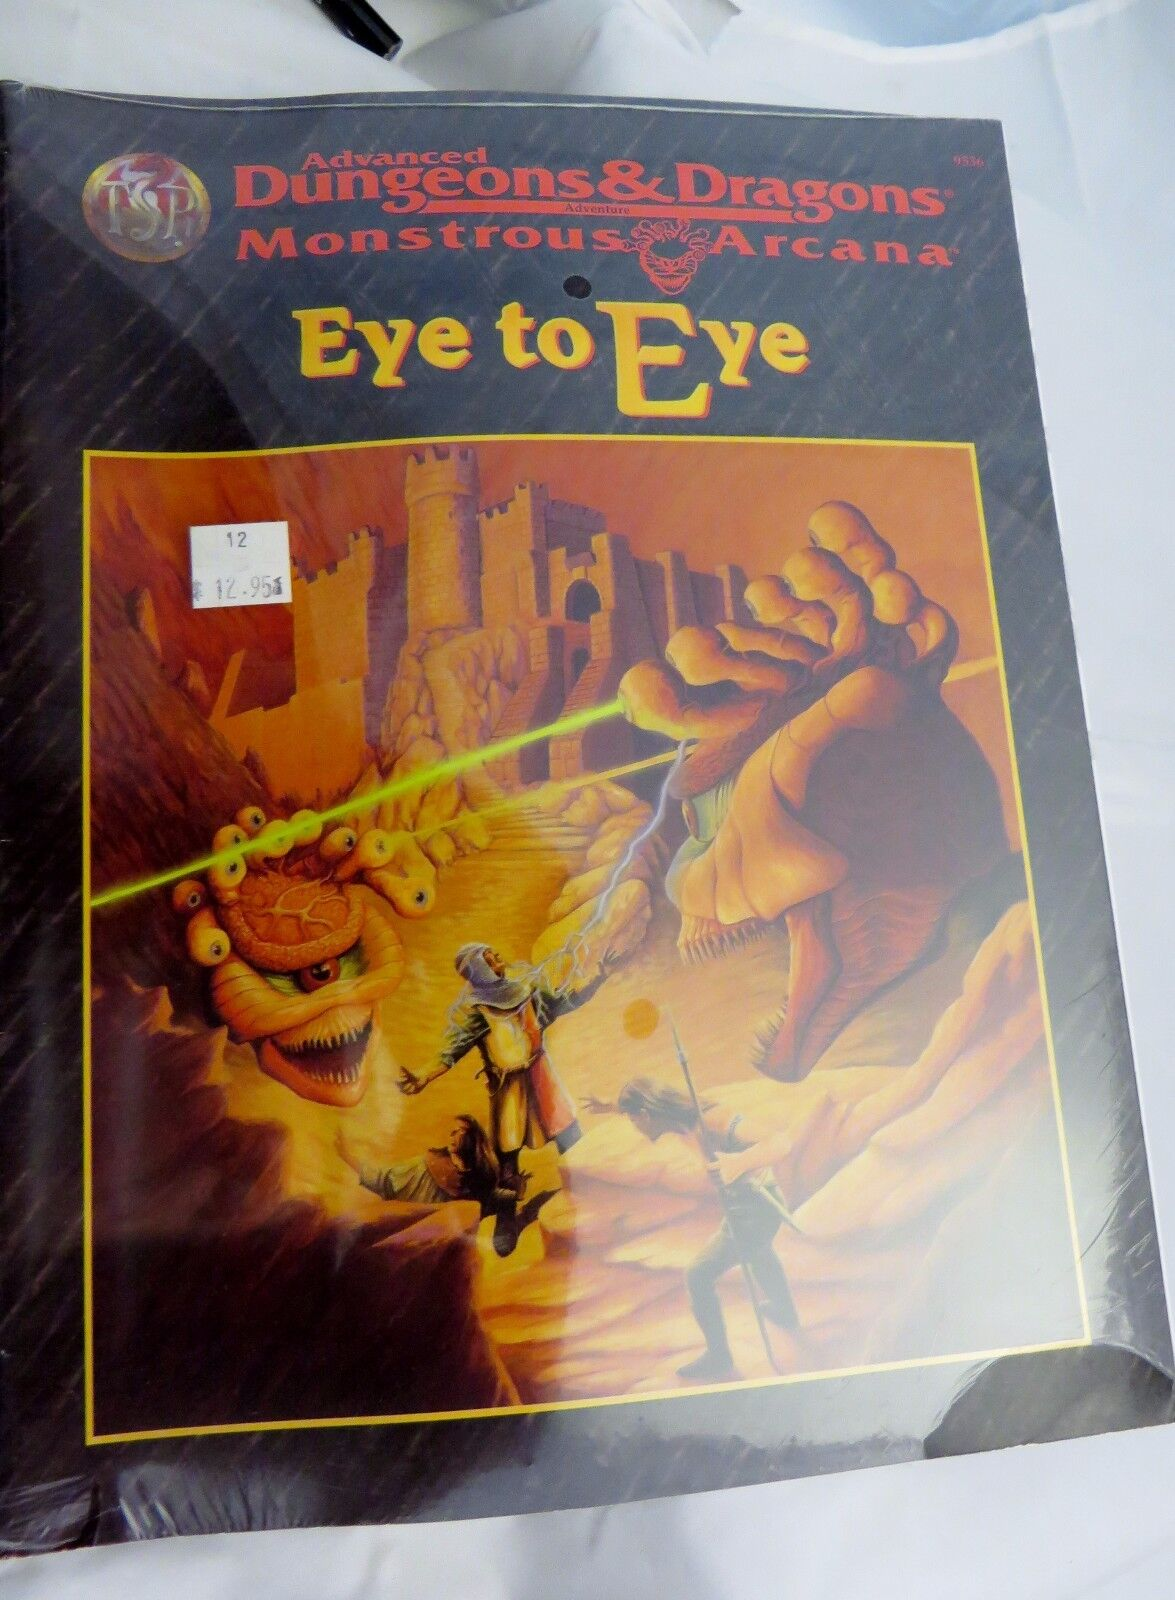 TSR AD&D 2nd Ed Beholder Trilogy, The Eye to Eye SC SW in shrink